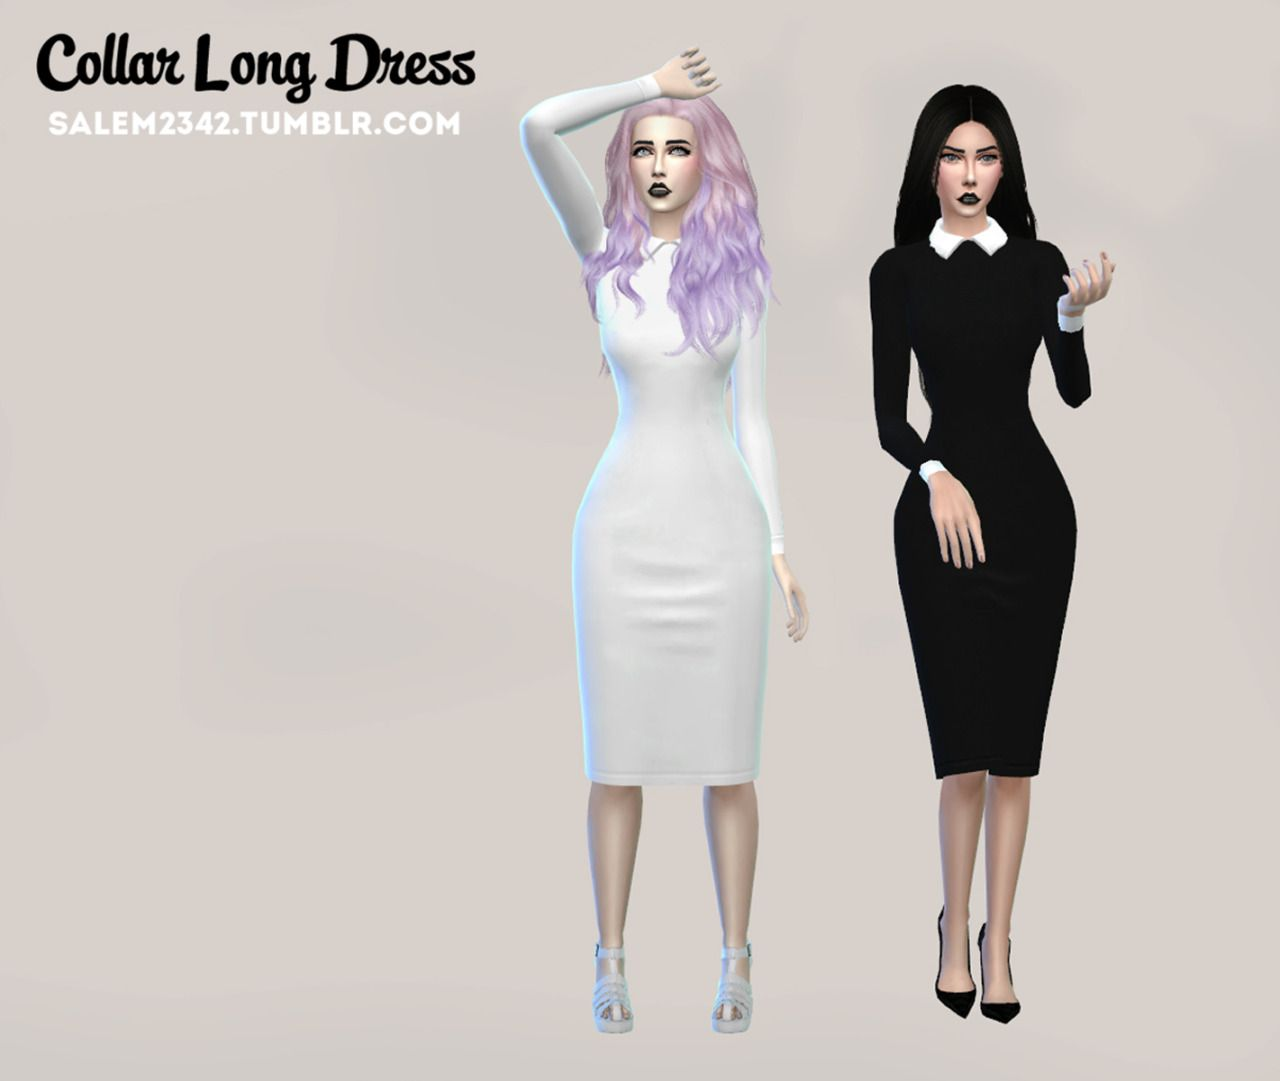 Sims 4 Wedding Dresses Mm | Saddha